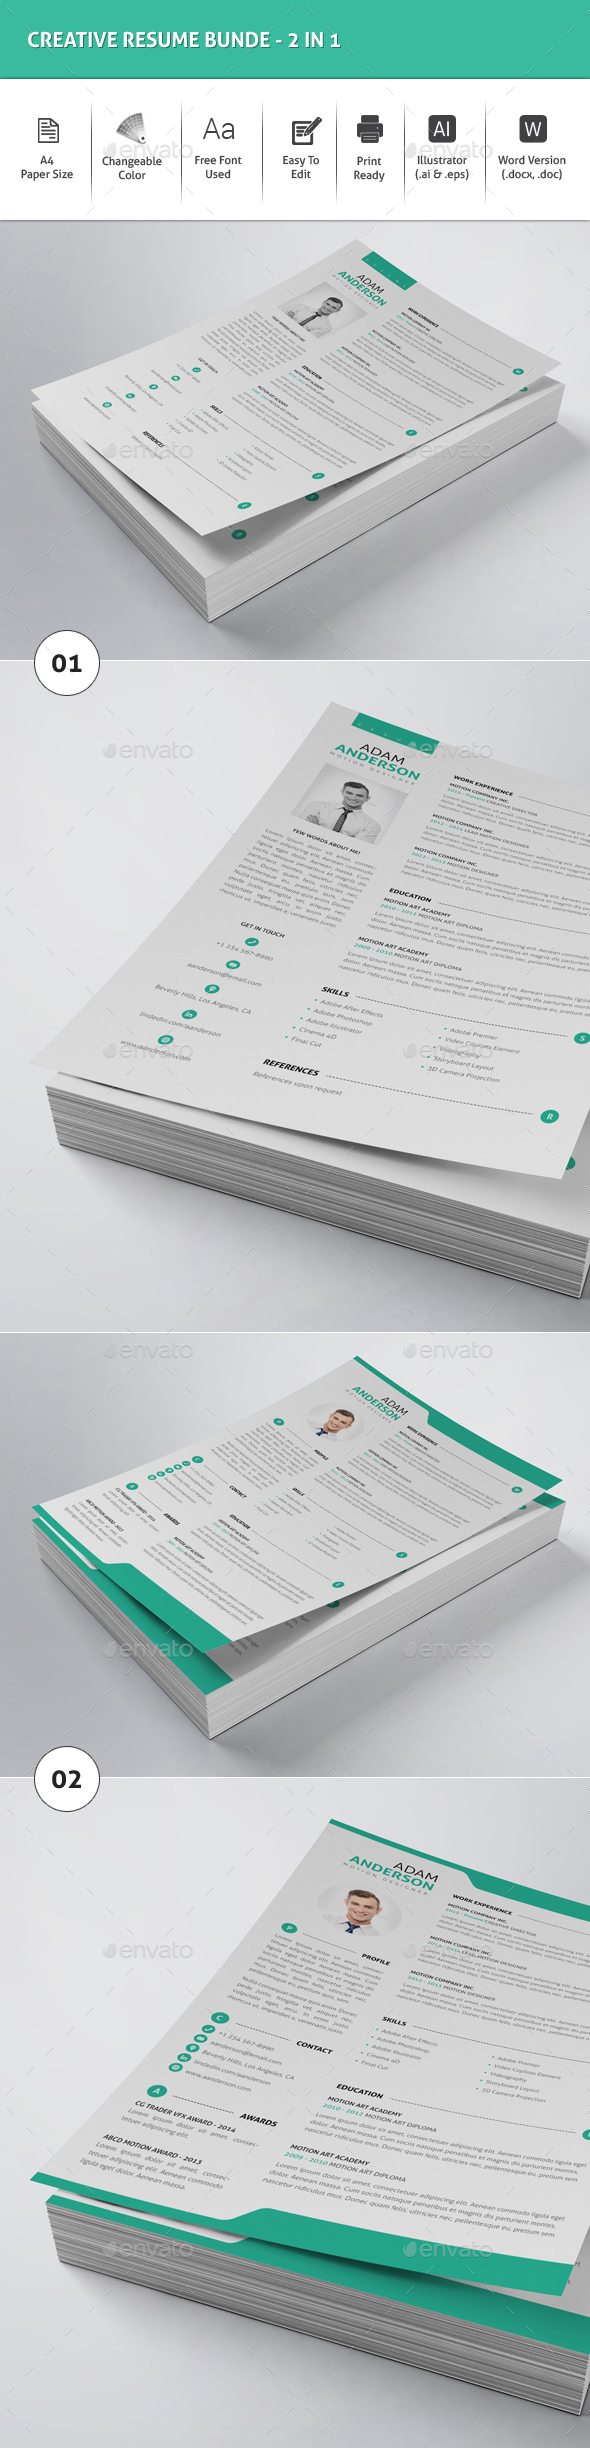 Creative Resume Bundle -2in1 - Resumes Stationery